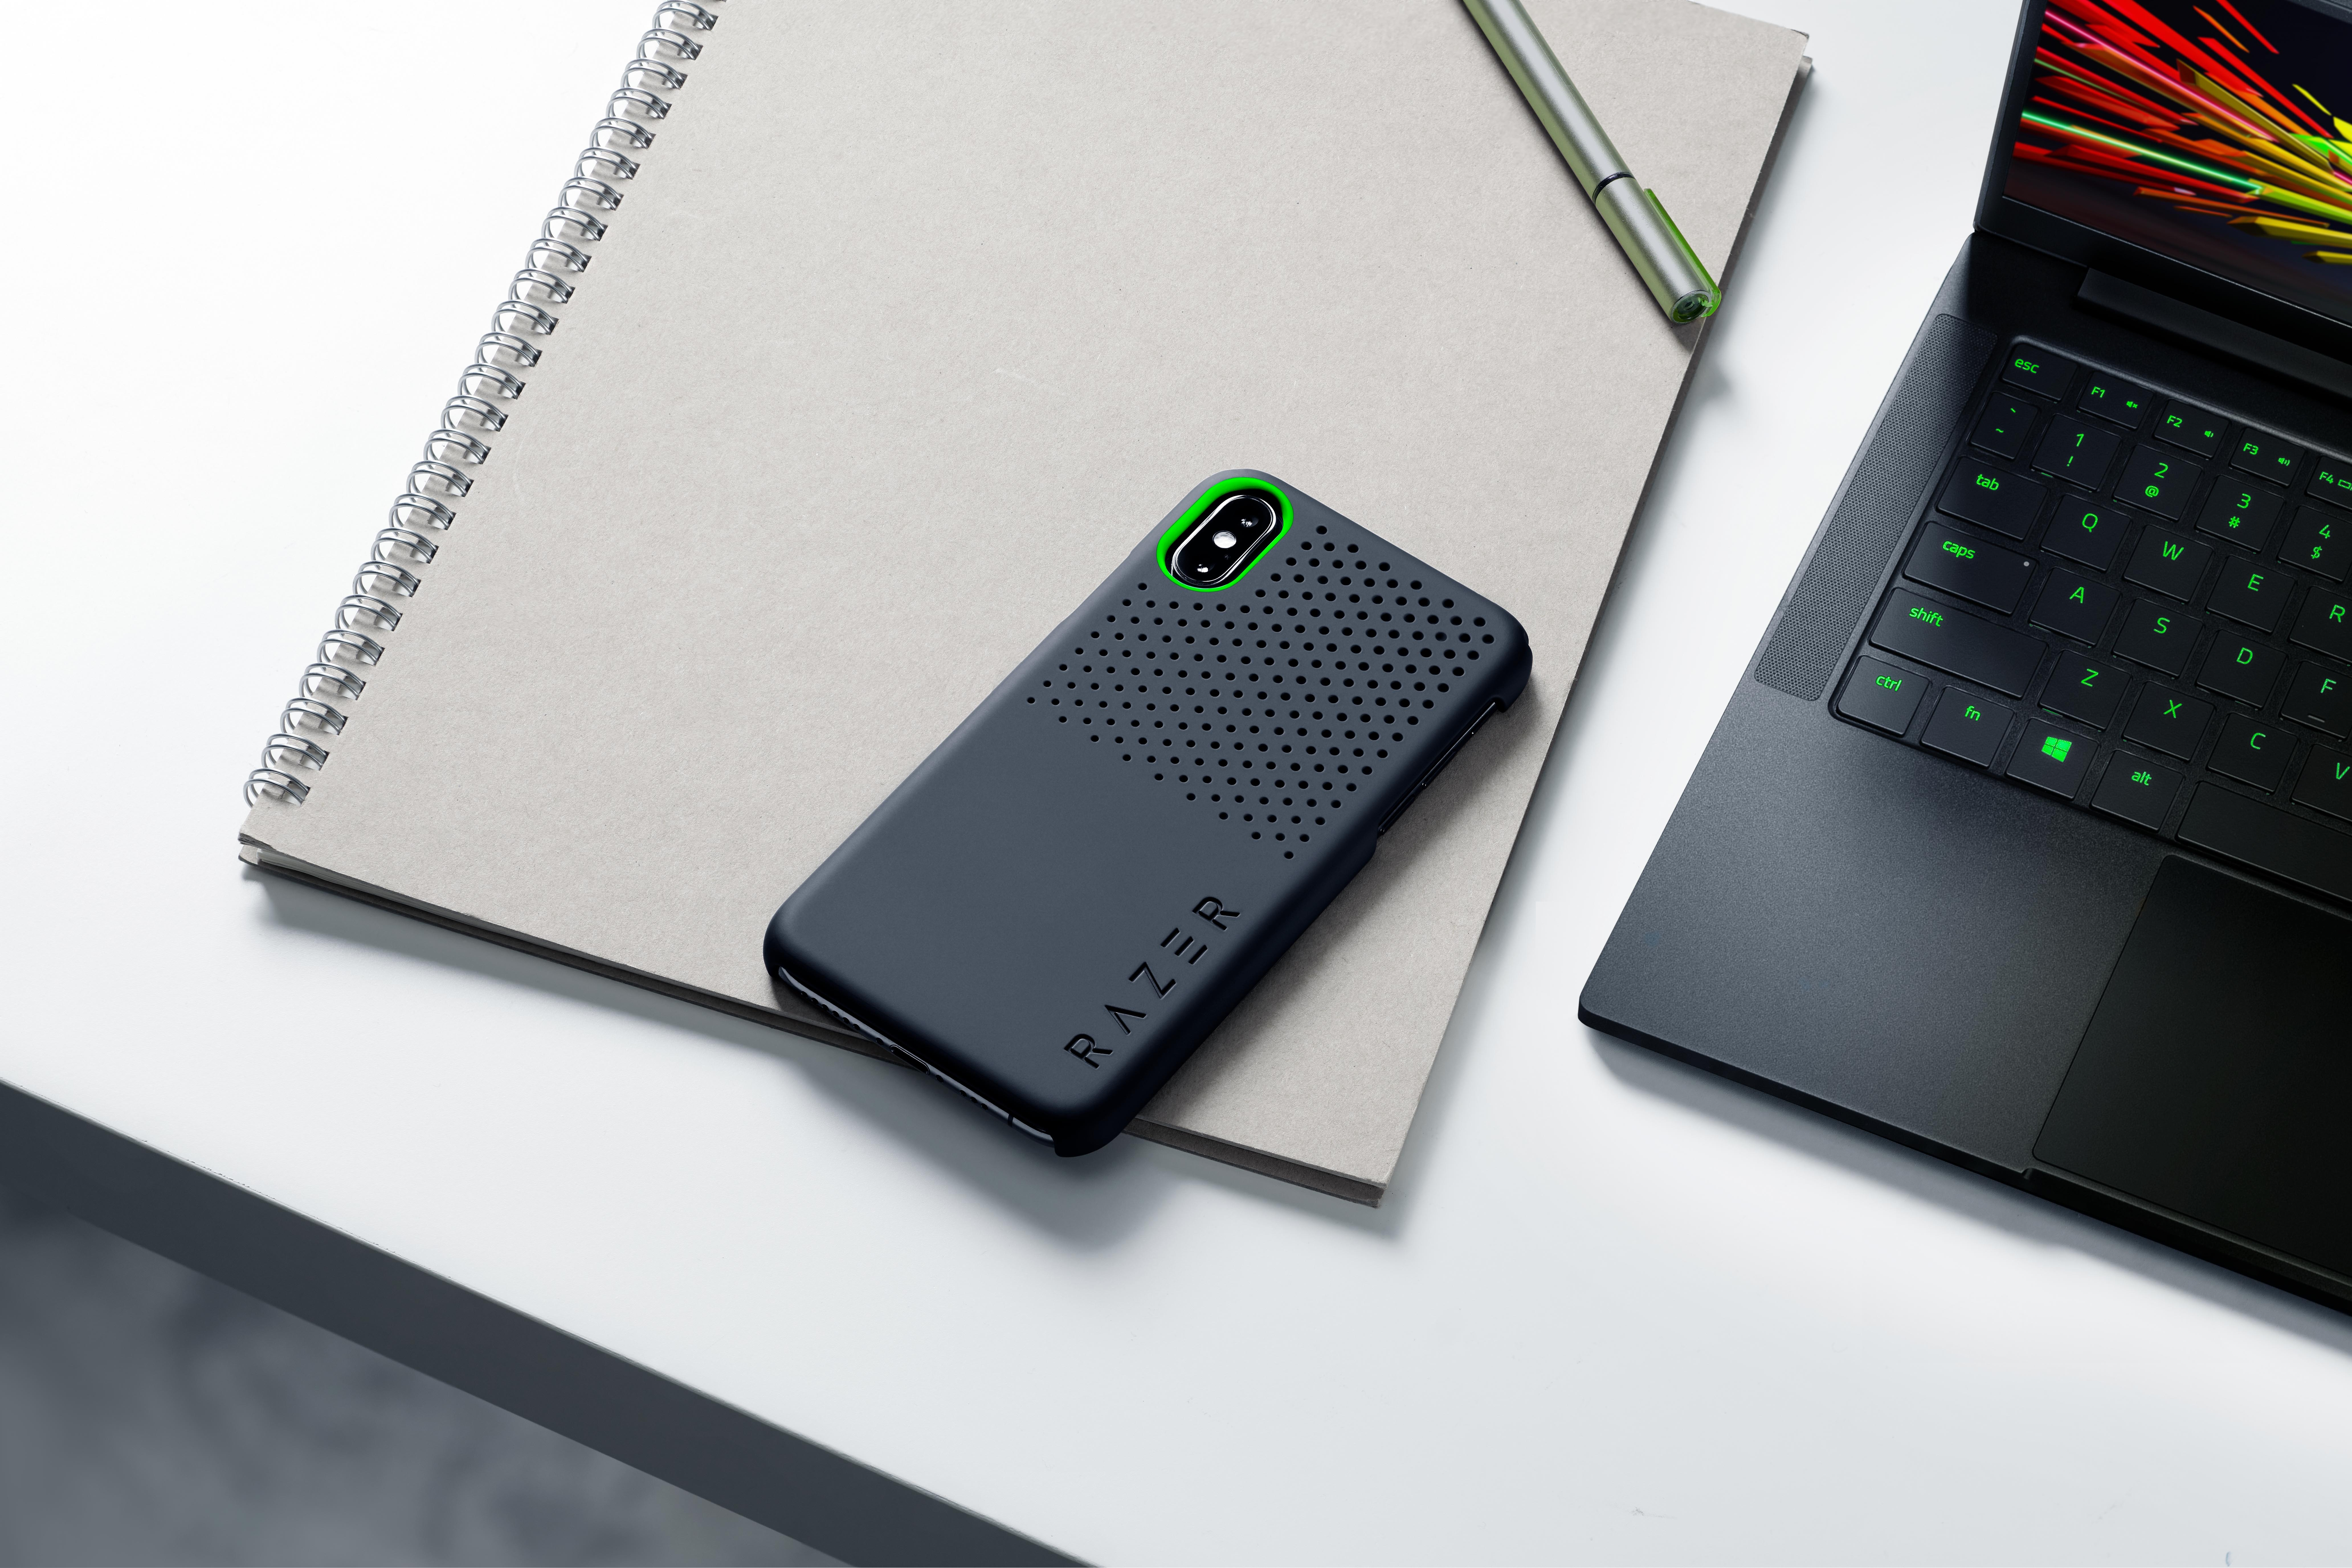 Iphone Cases Don T Get Any Cooler Than The Razer Arctech